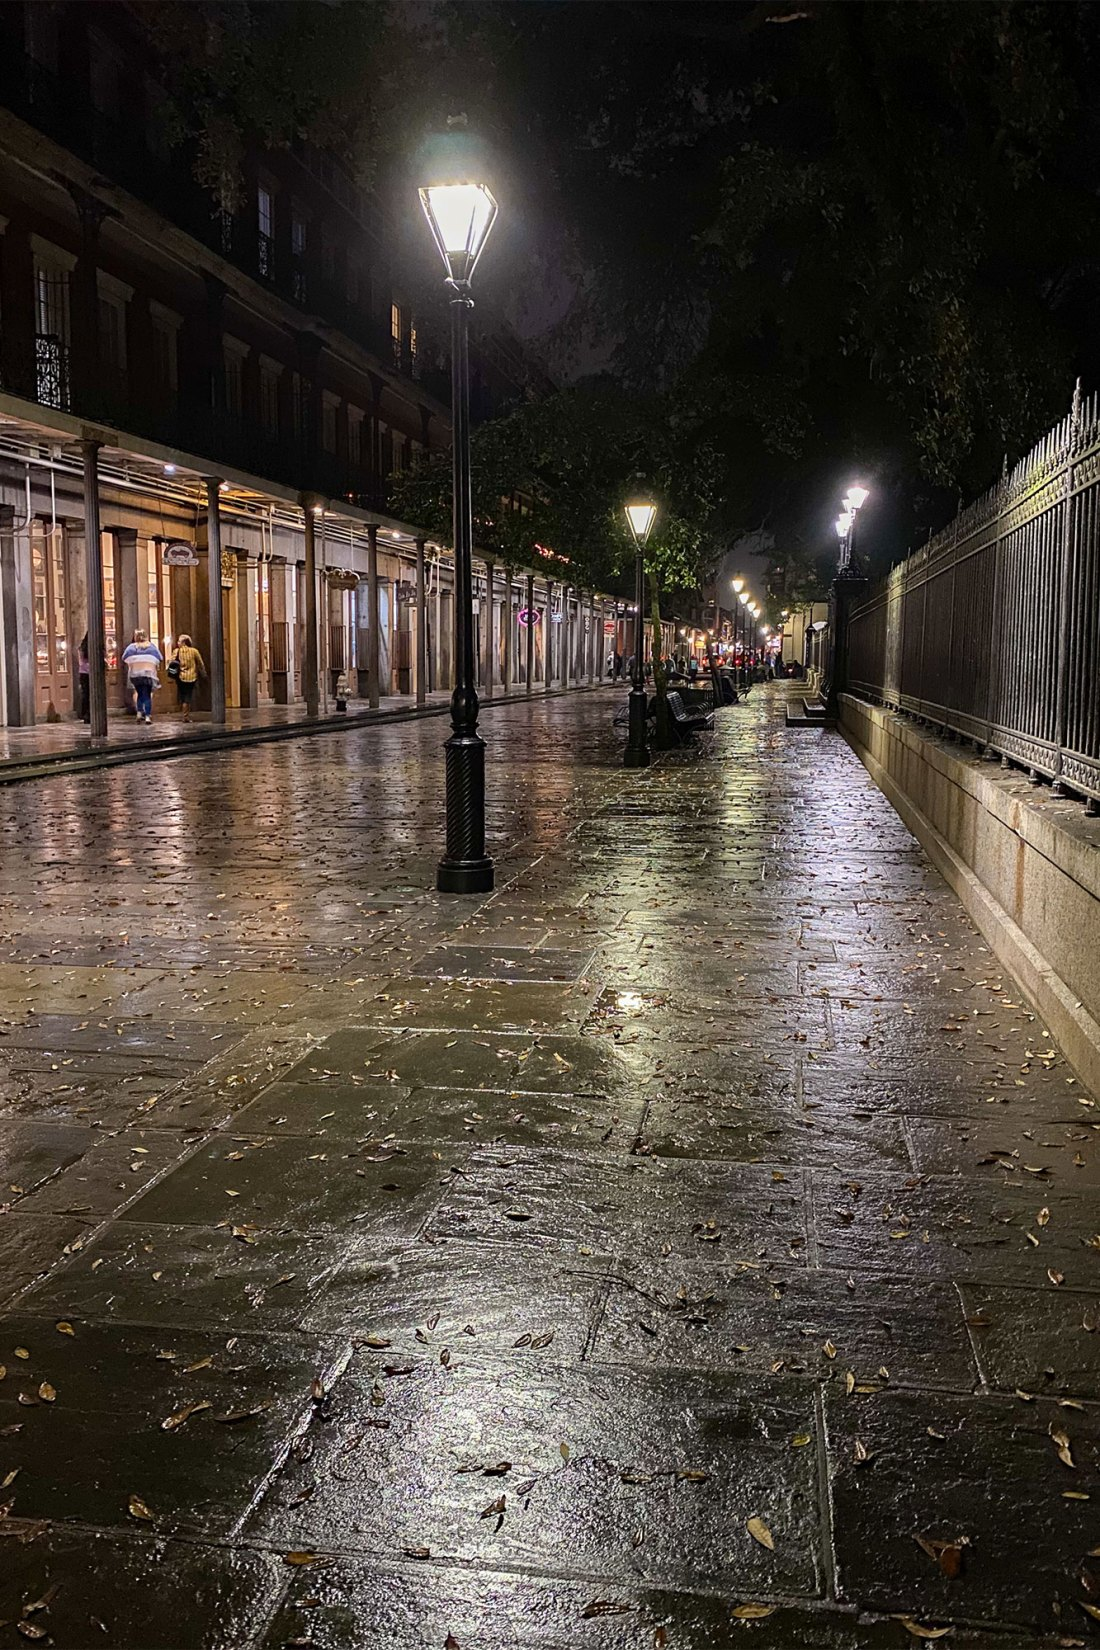 Rain covered alley at night